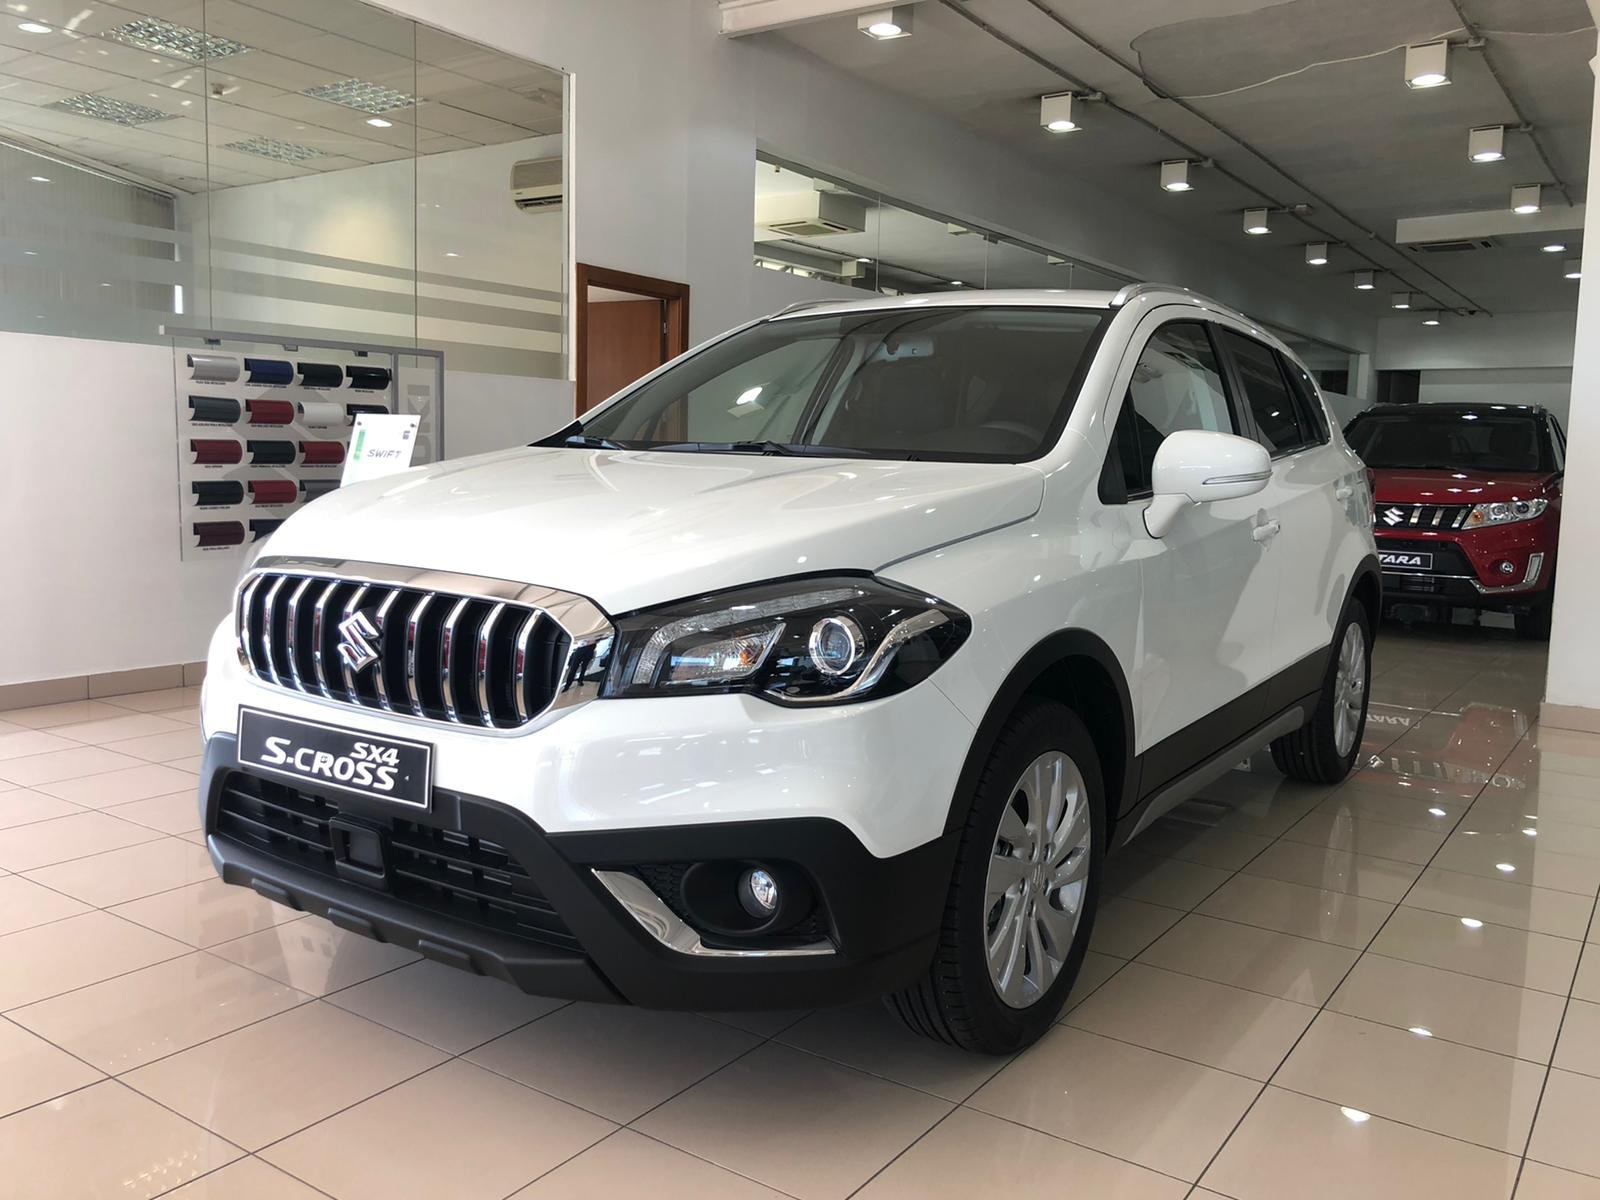 New Unregistered Suzuki S-Cross